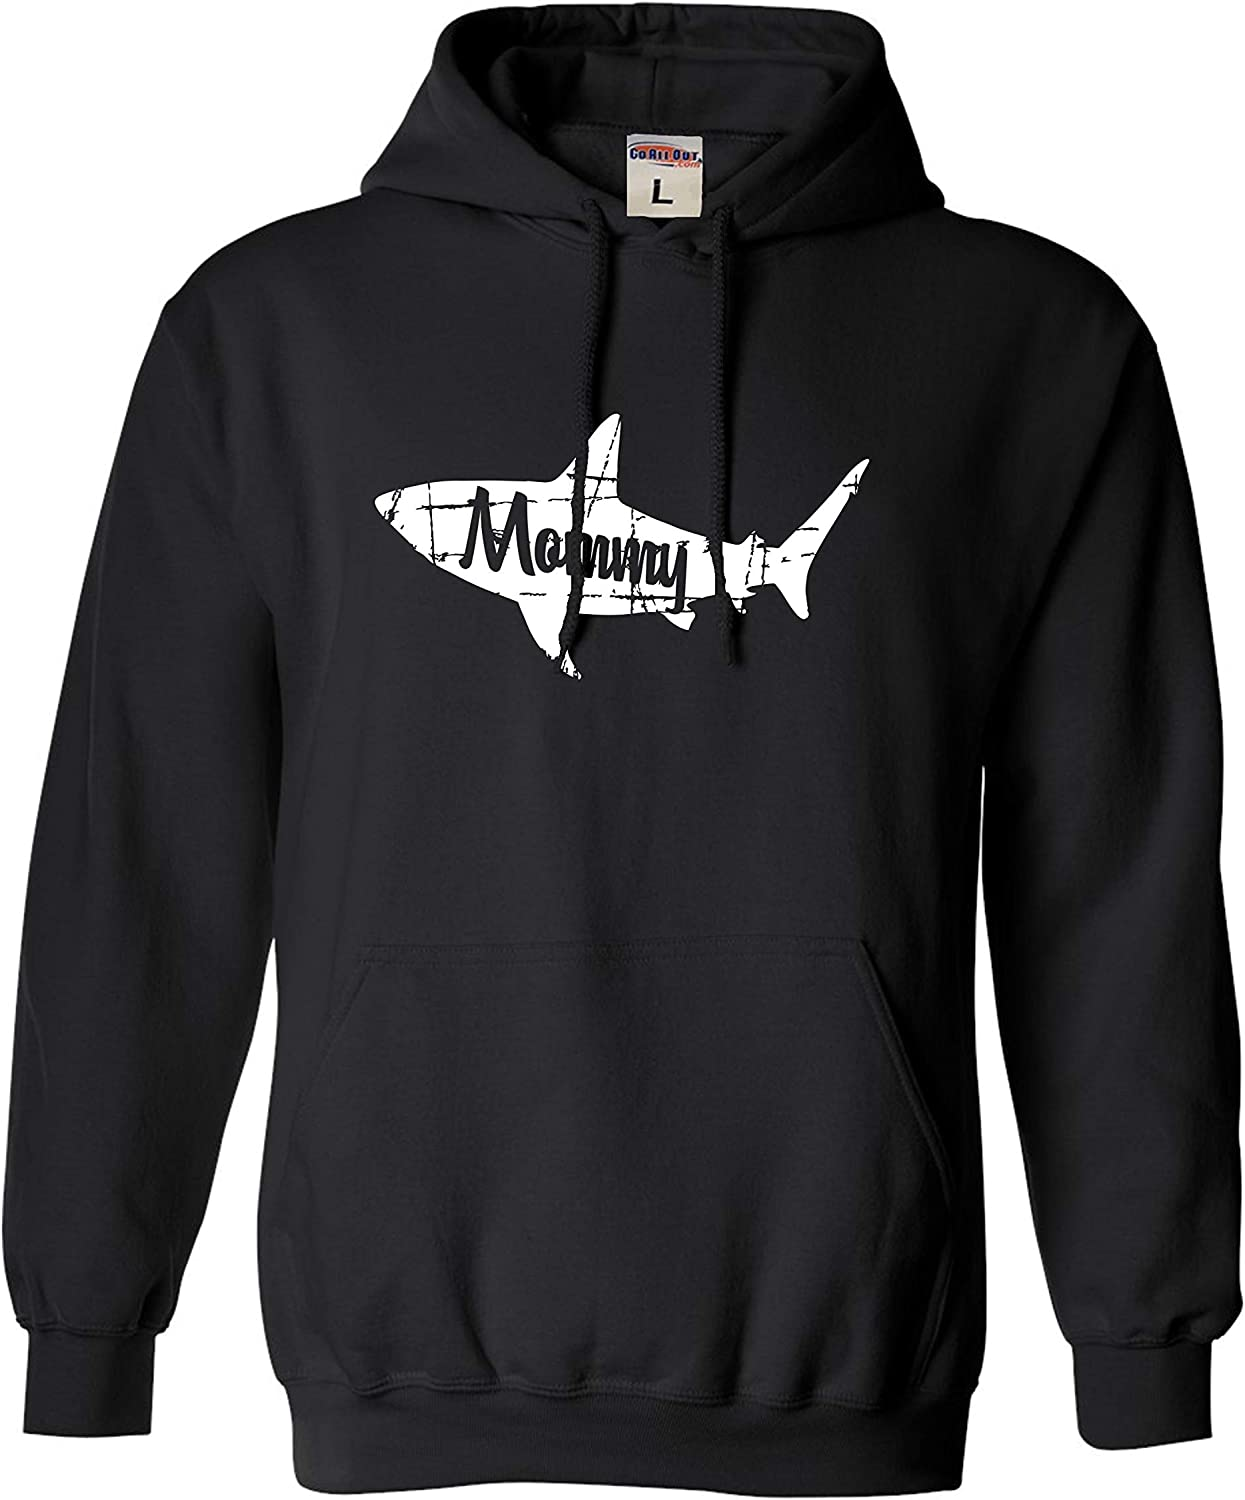 Go All Out Adult Fashion Mommy Shark Sweatshirt Hoodie